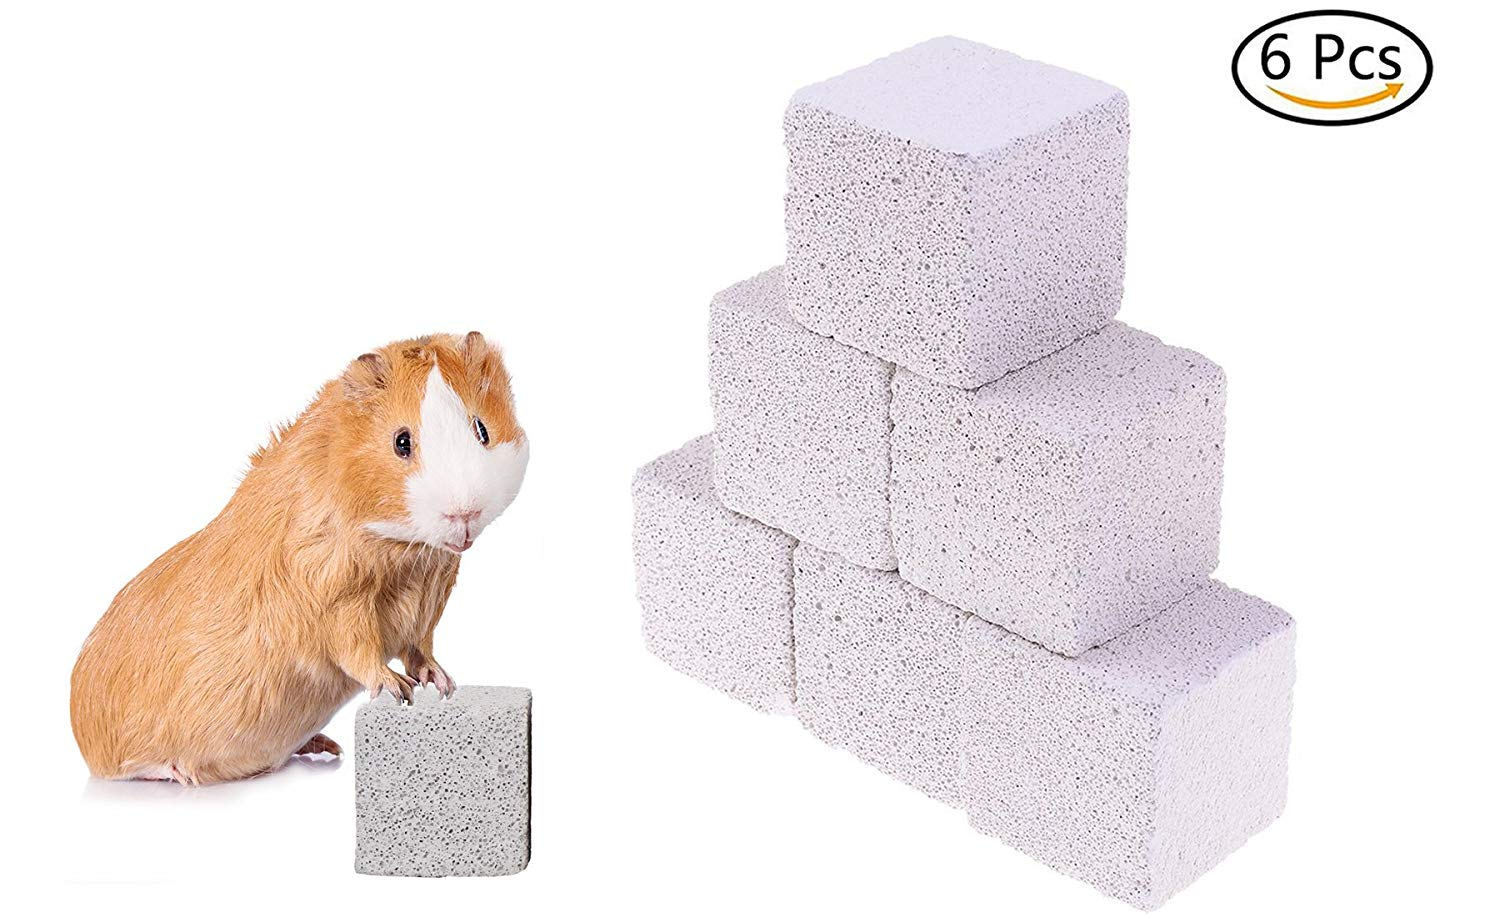 buytra Chew Toys for Rodents, Natural Lava Rock Teeth Grinding Stone Block for Chinchilla, Guinea Pig, Hamster, Rabbit, Set of 6